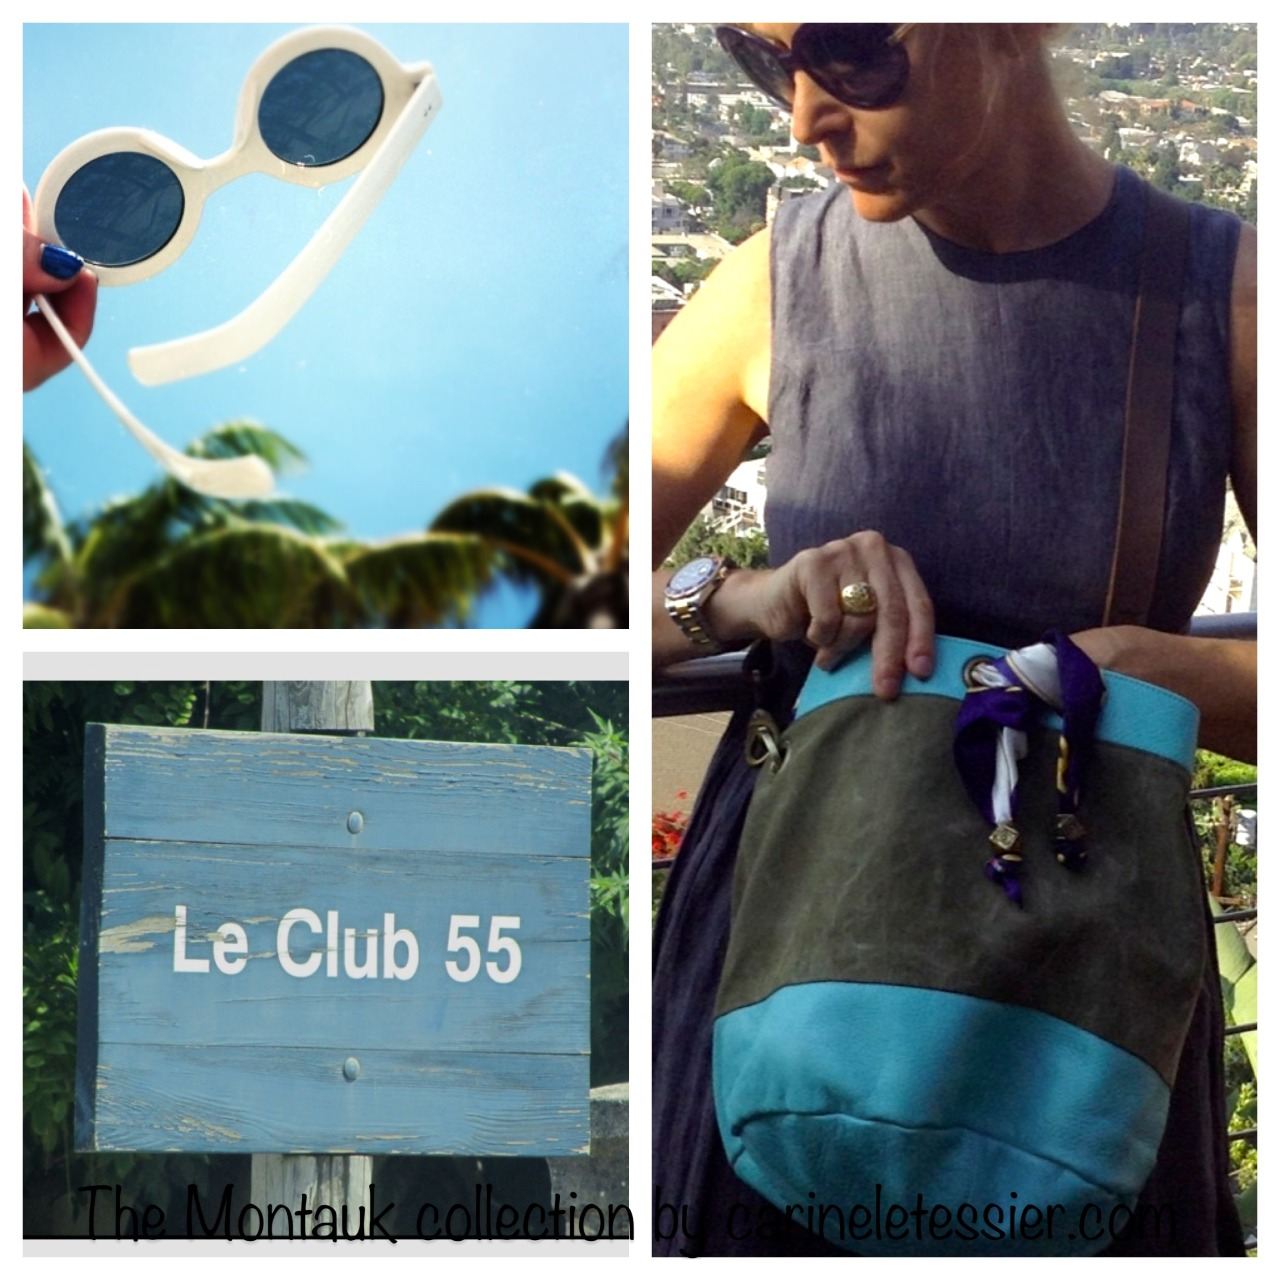 Montauk bag collection: aqua blue Montauk bag + sun glasses + Club 55. I am forgetting something? :)